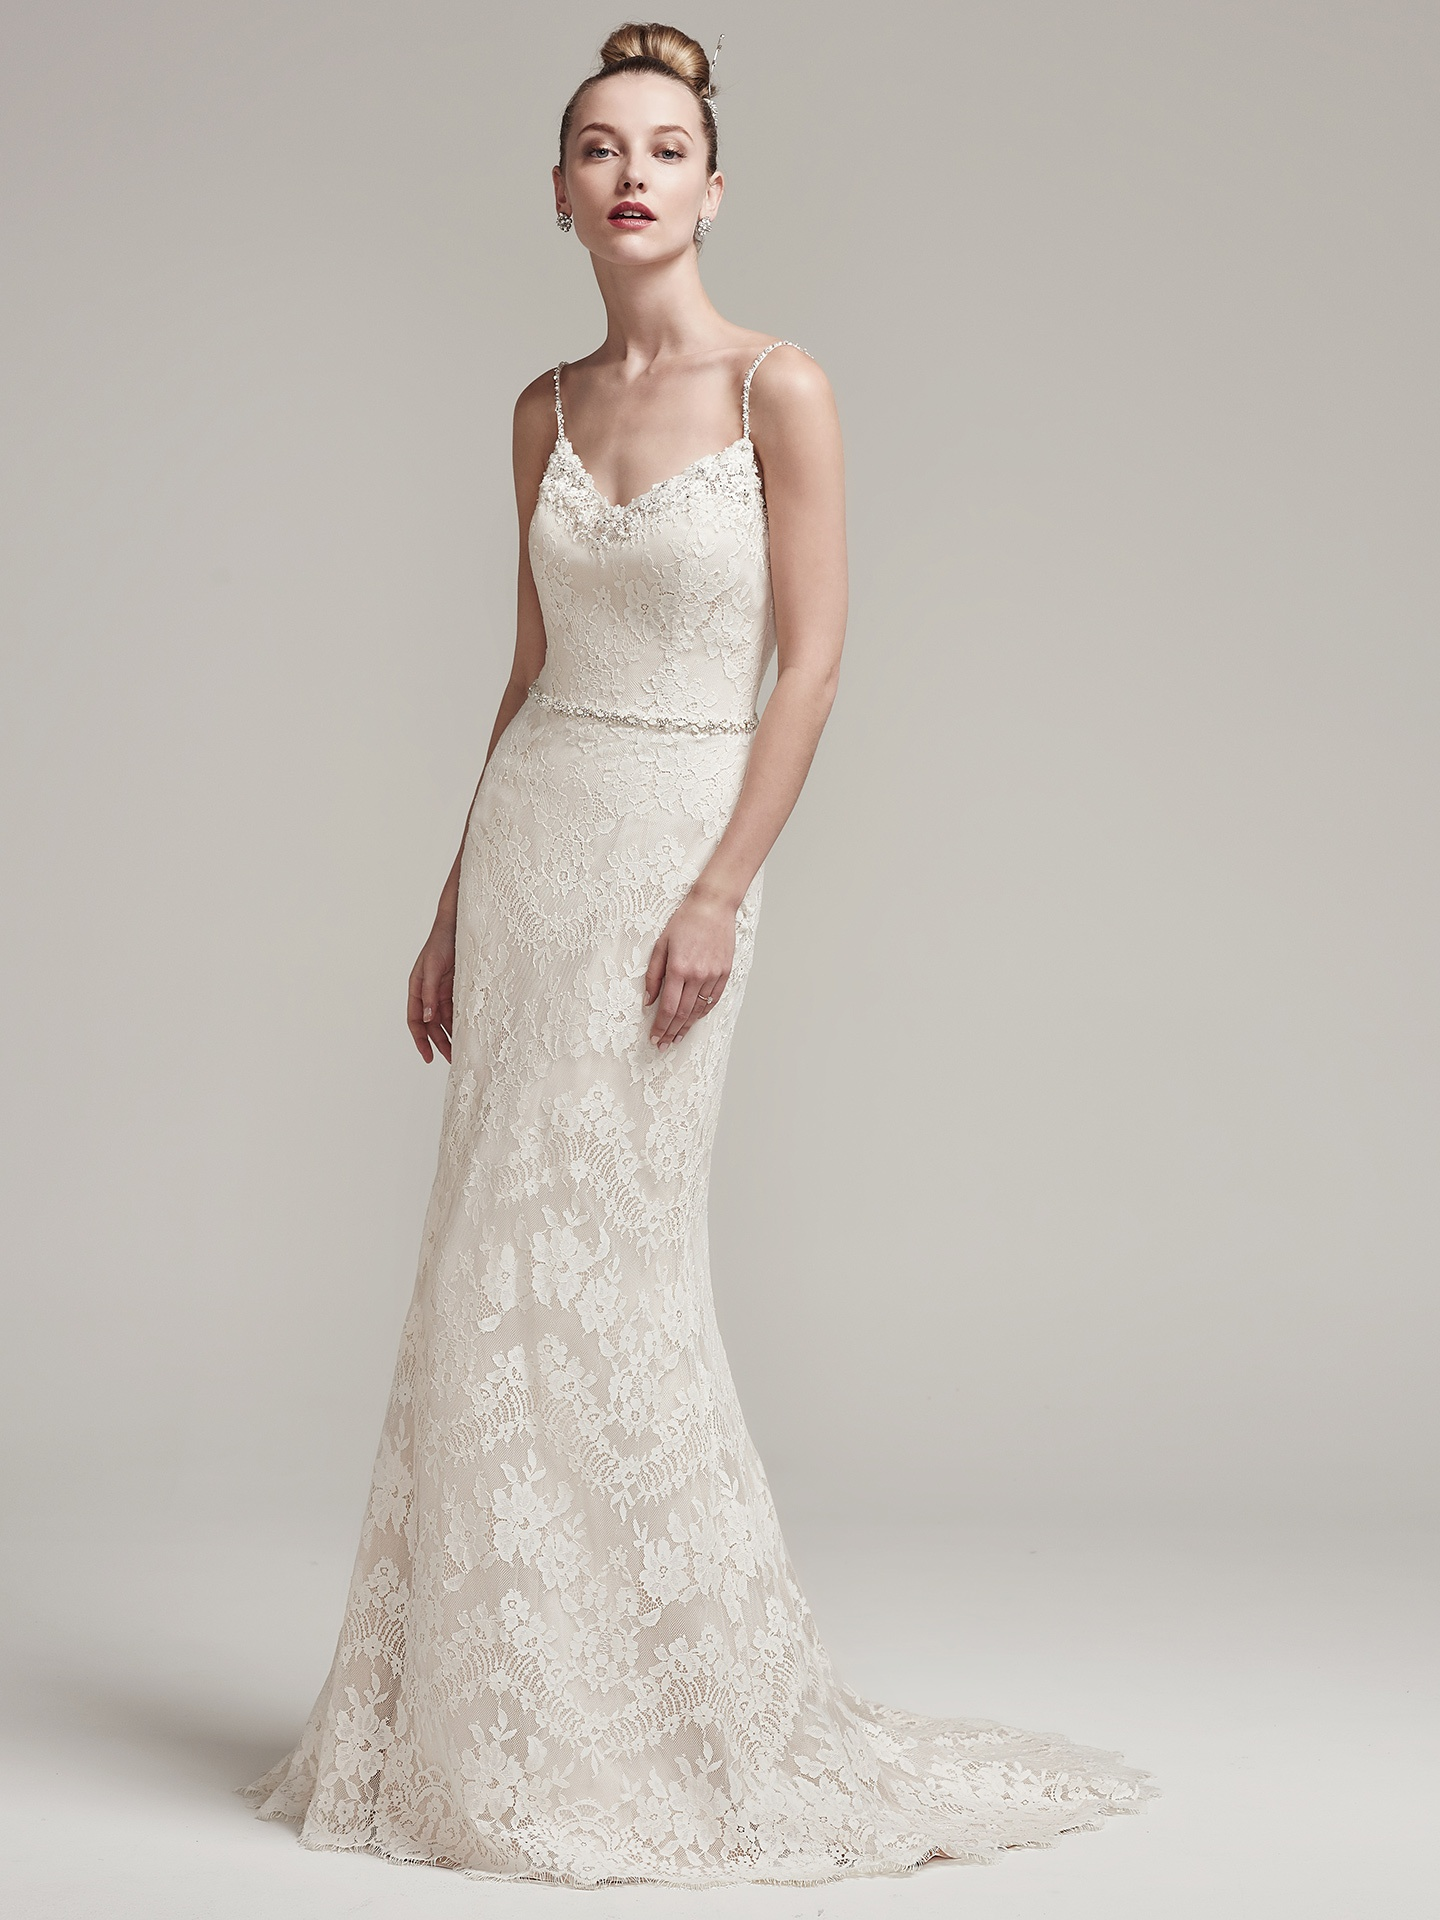 Wedding Dress with Chic Spaghetti Straps - Love Maggie : Love Maggie